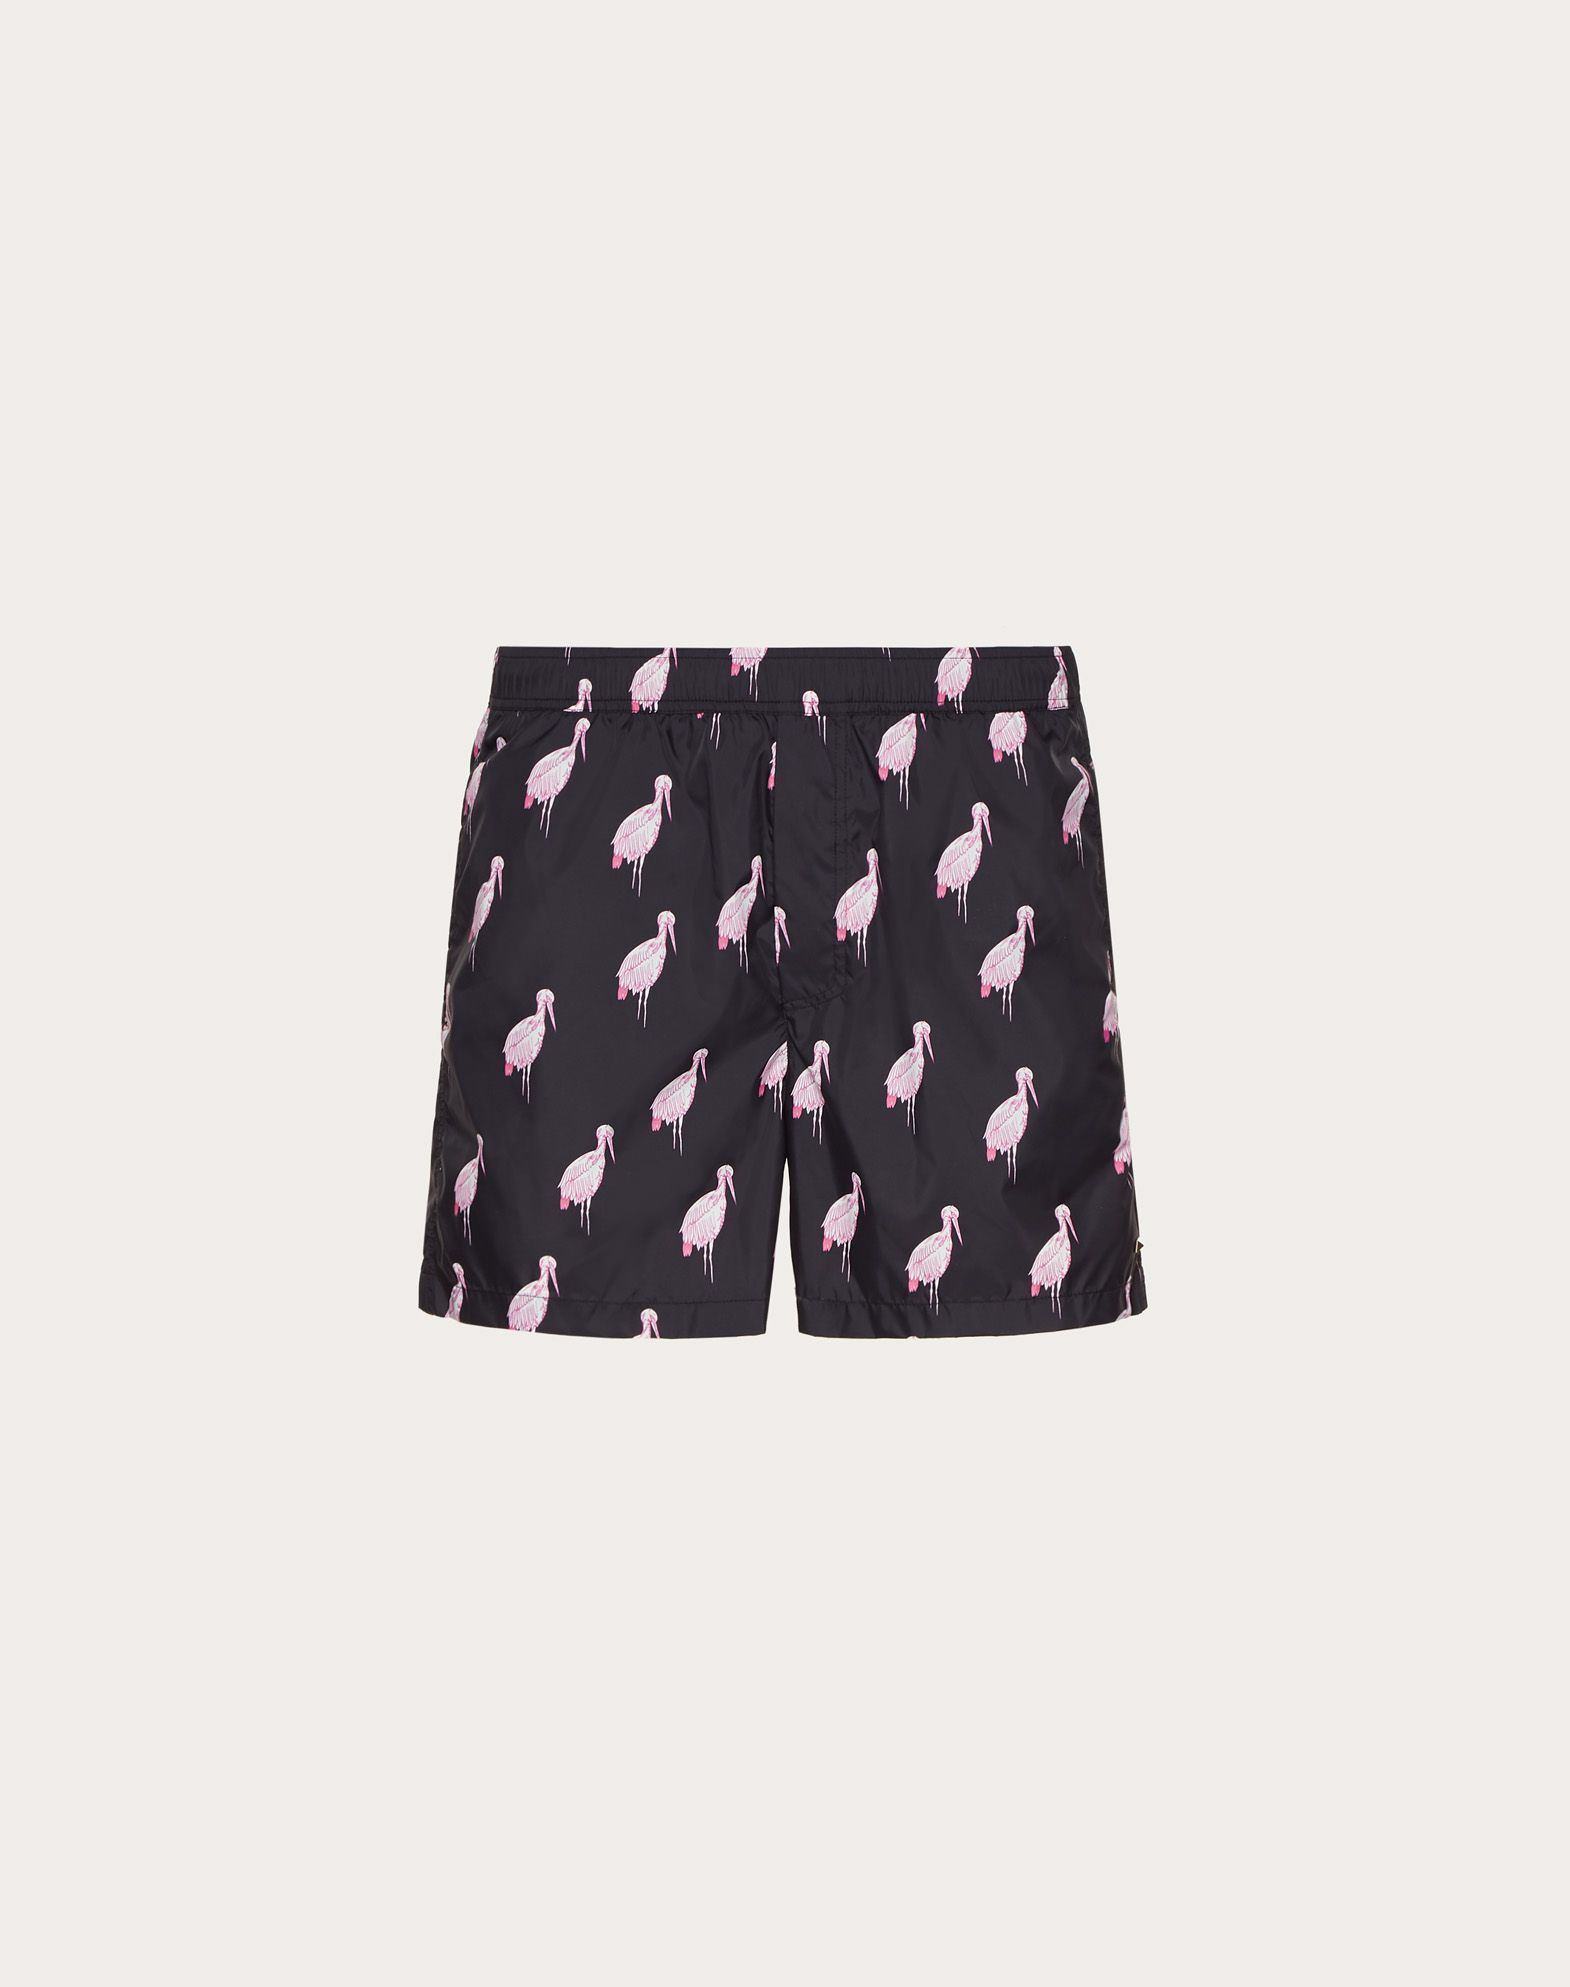 JAPANESE POND PRINT BATHING SUIT